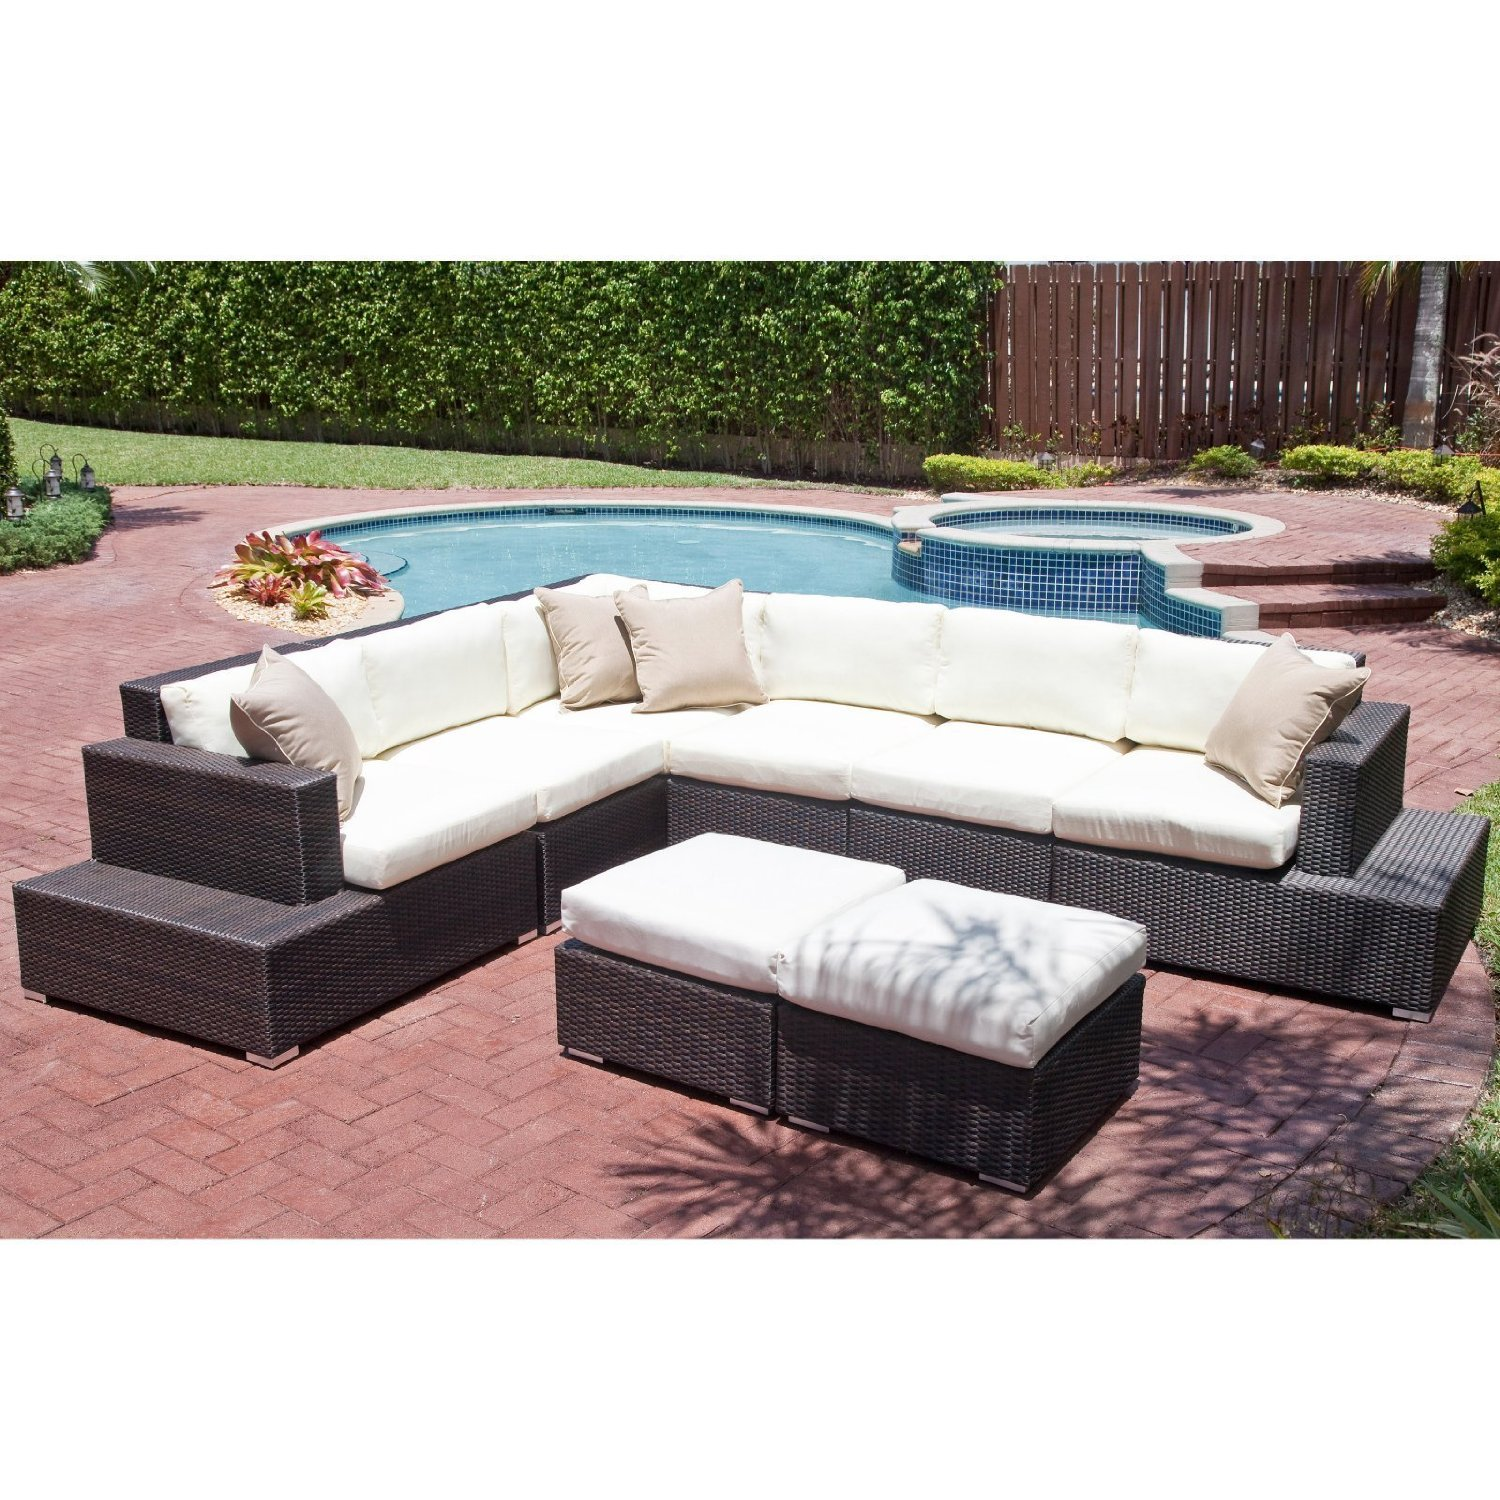 Outdoor Furniture Sofa